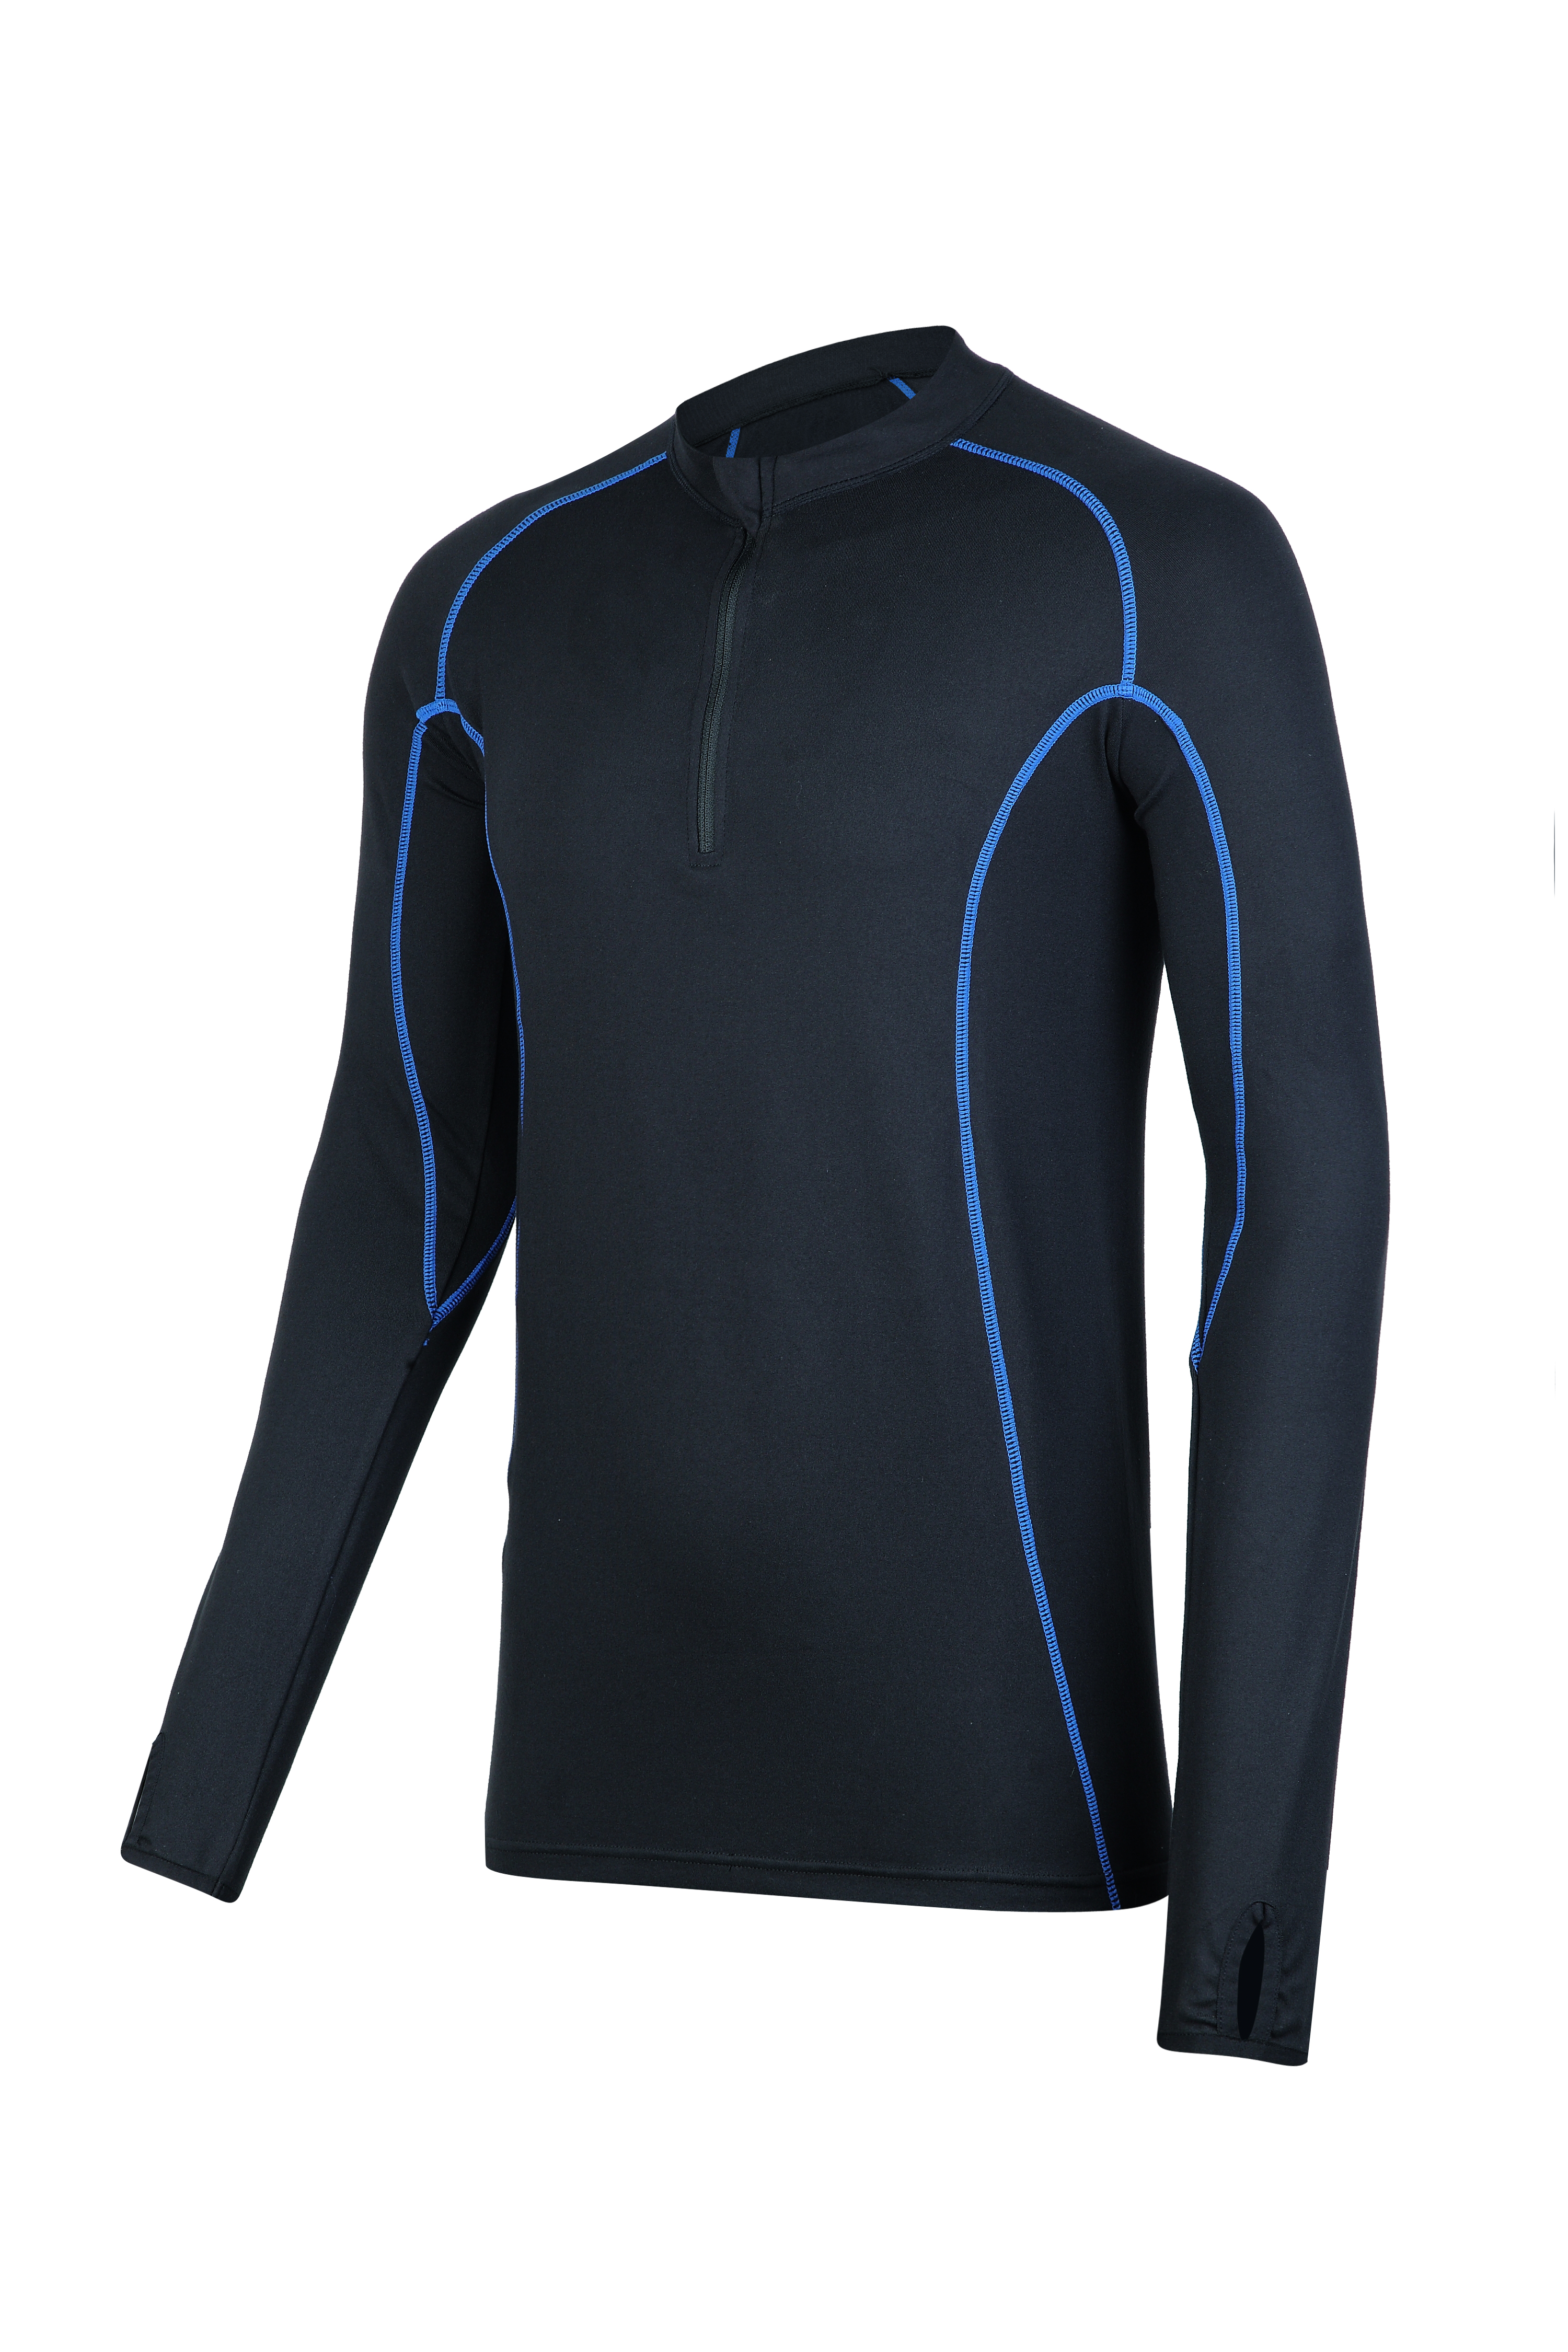 Men's knitted 1/4 zipper compression top.